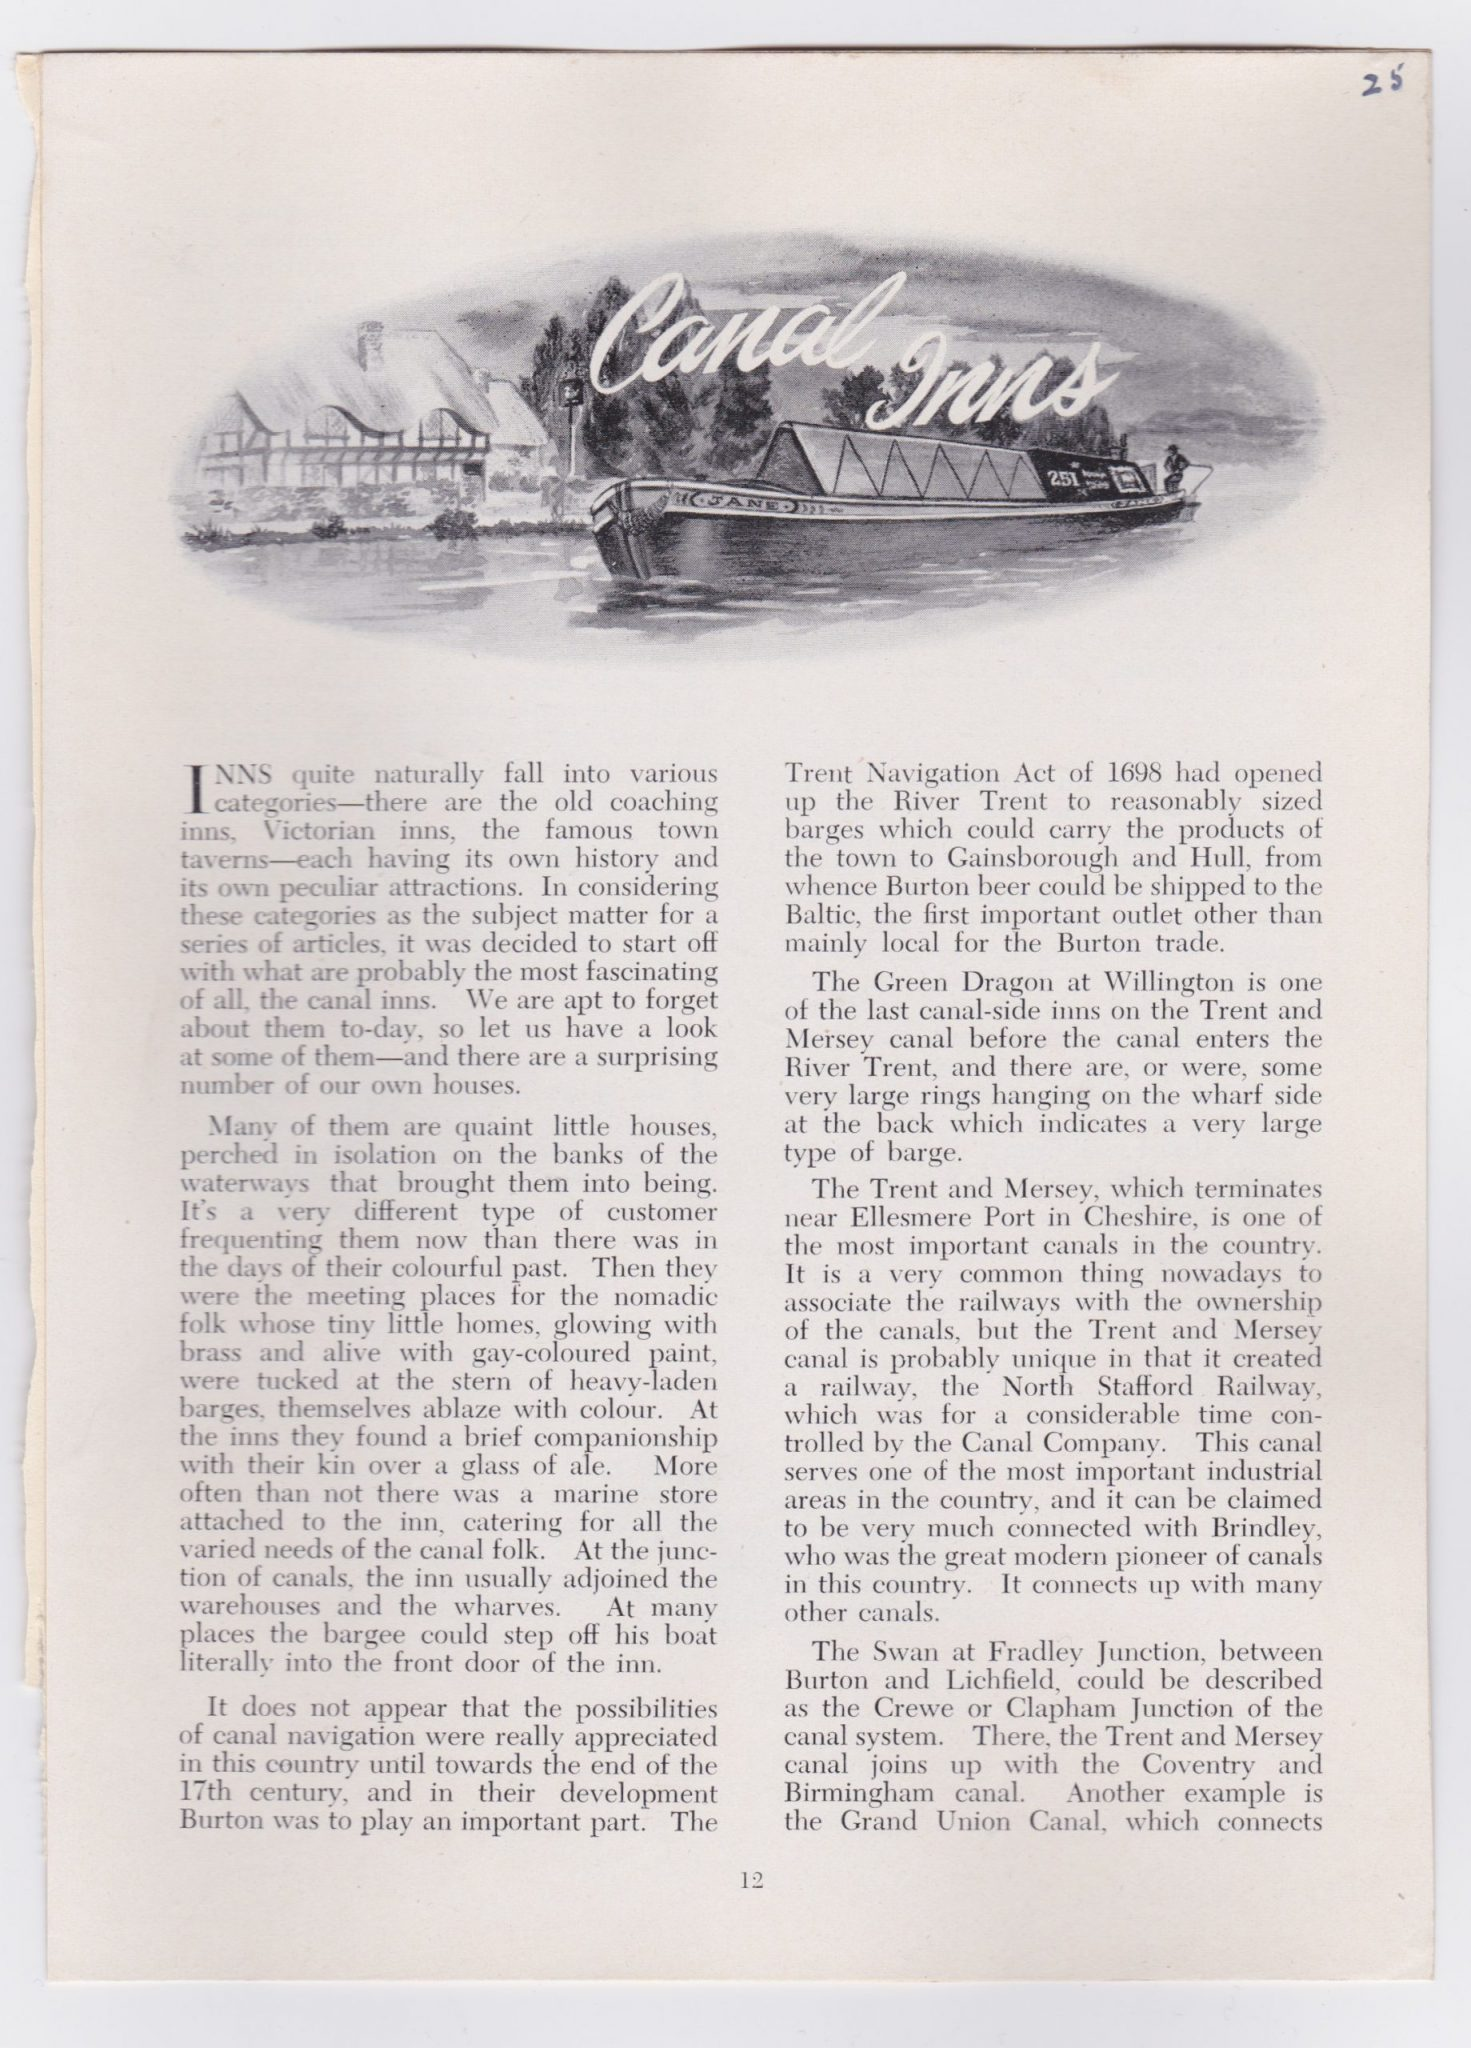 A 1950s article about Canal Inns